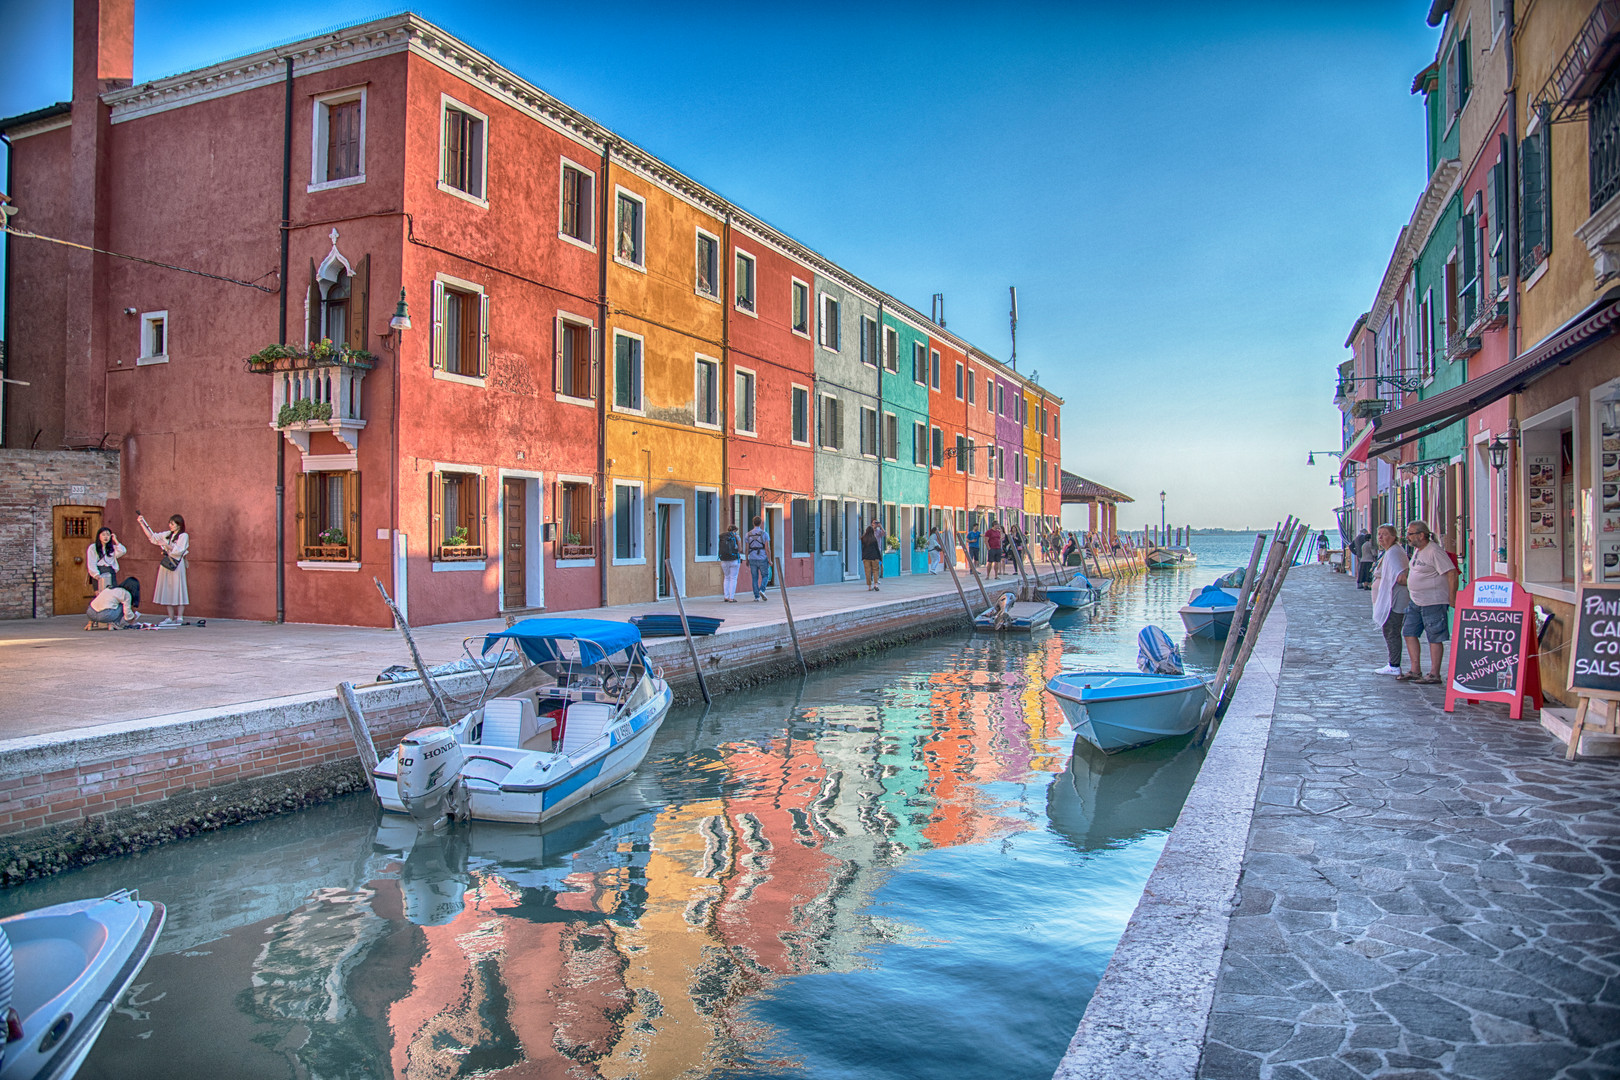 The Canals of Burano - A.jpg